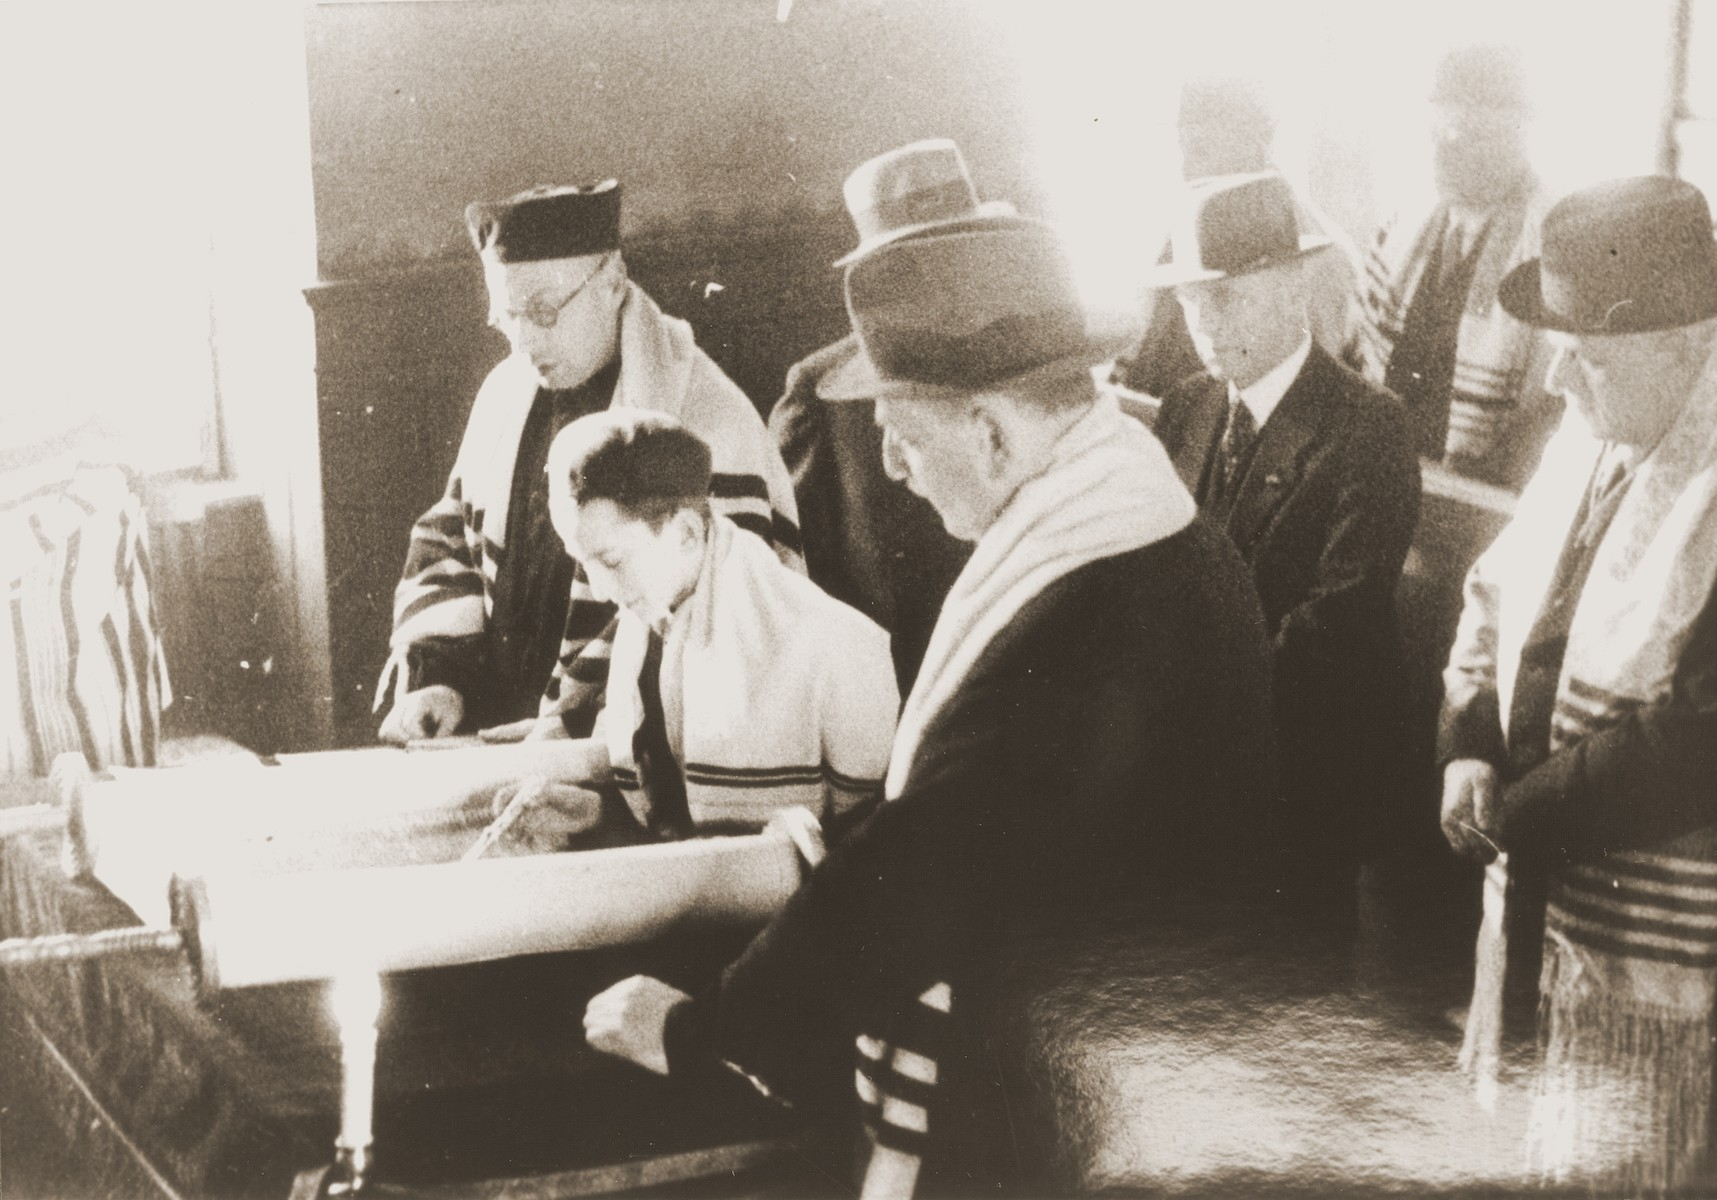 Ludwig Nachmann (center foreground), the president of the congregation, follows the Torah reading during a bar mitzvah at the liberal Zerrennerstrasse synagogue in Pforzheim.